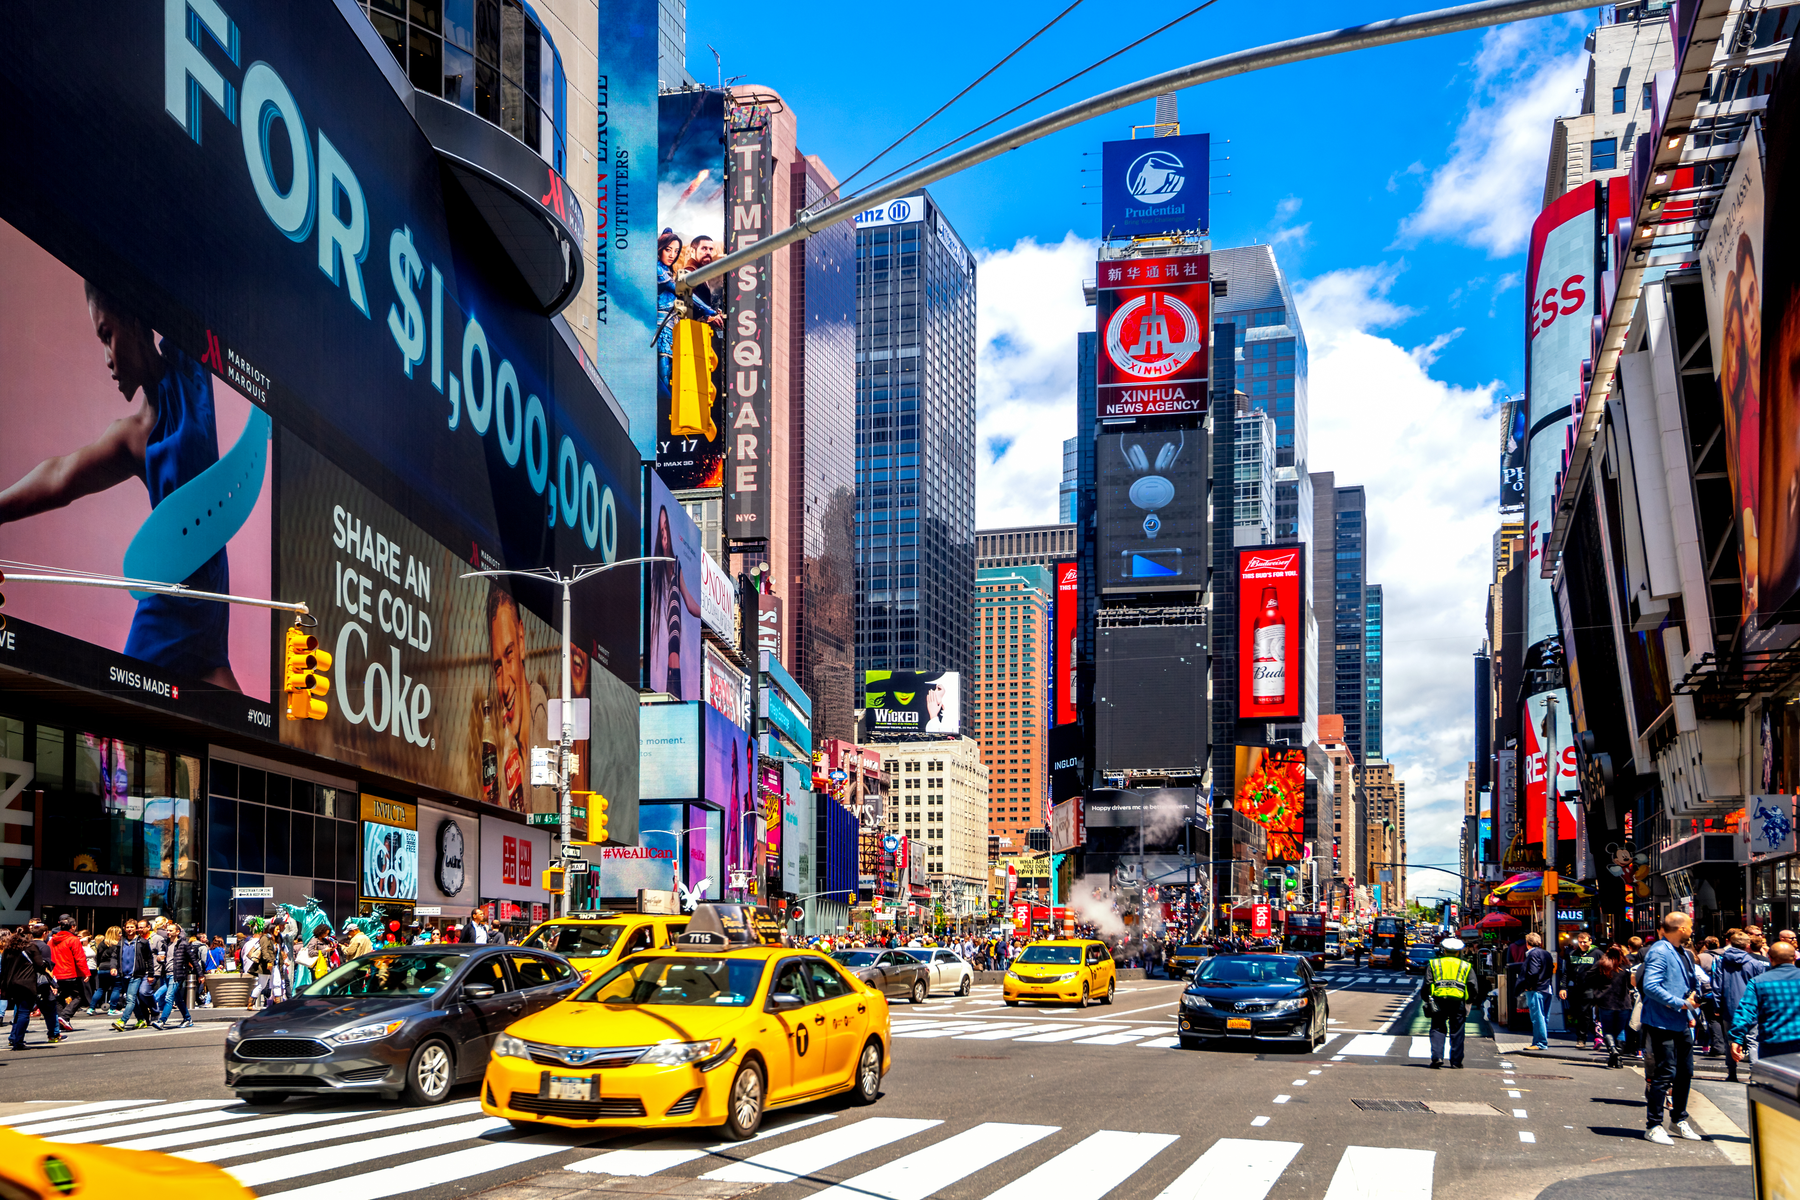 How to Spend a Weekend in New York City on a Budget